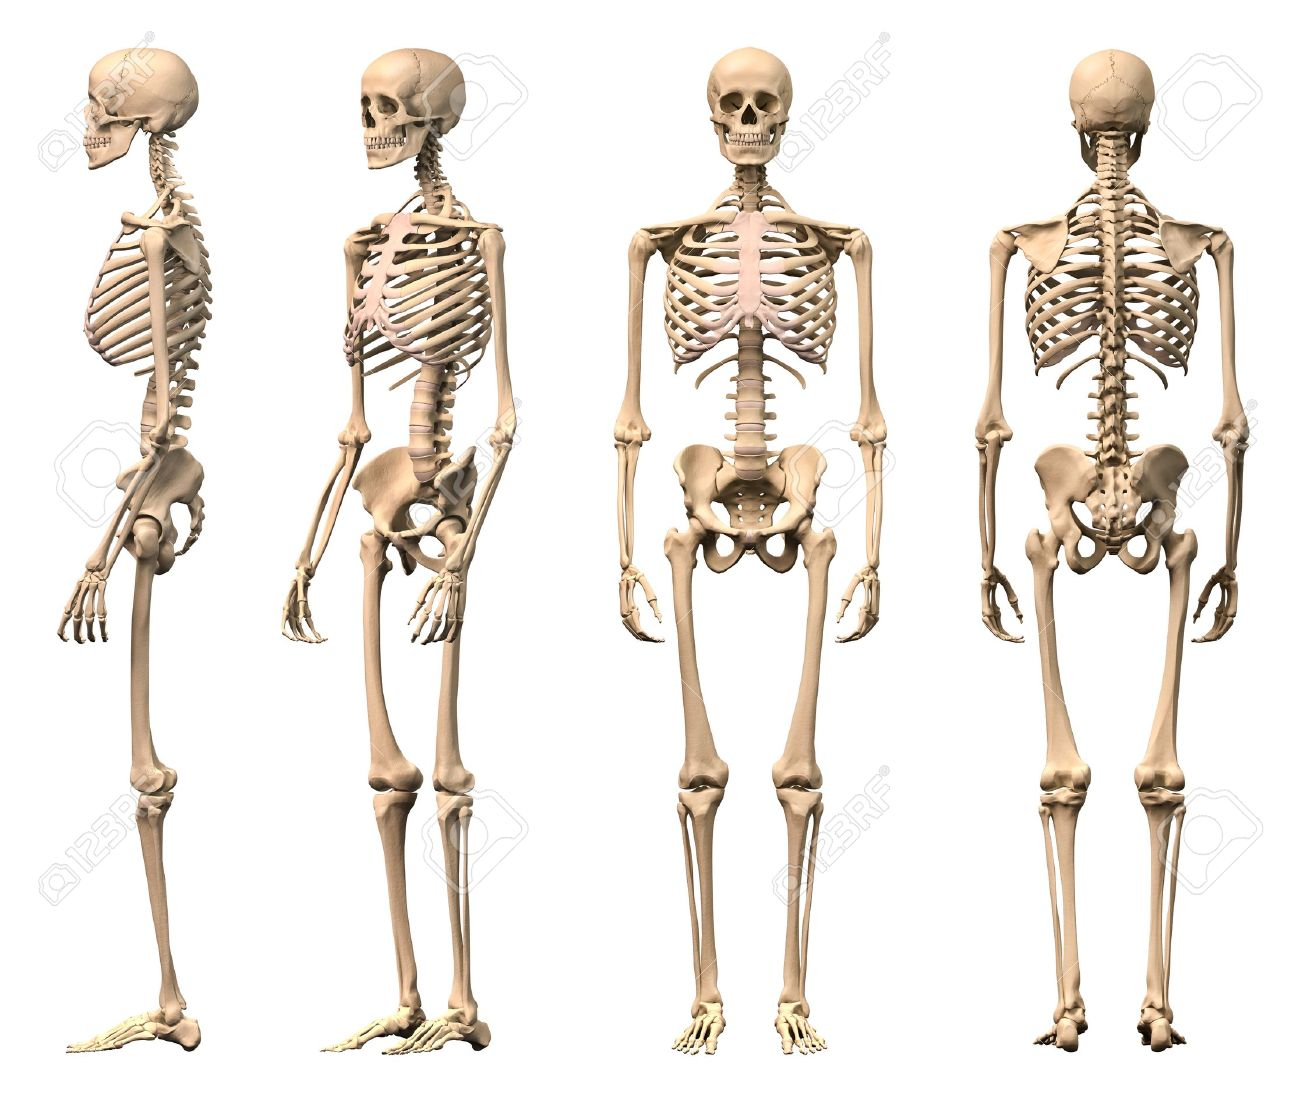 Male Human skeleton, four views, front, back, side and perspective. Scientifically correct, photorealistic 3-D rendering. - 11713071